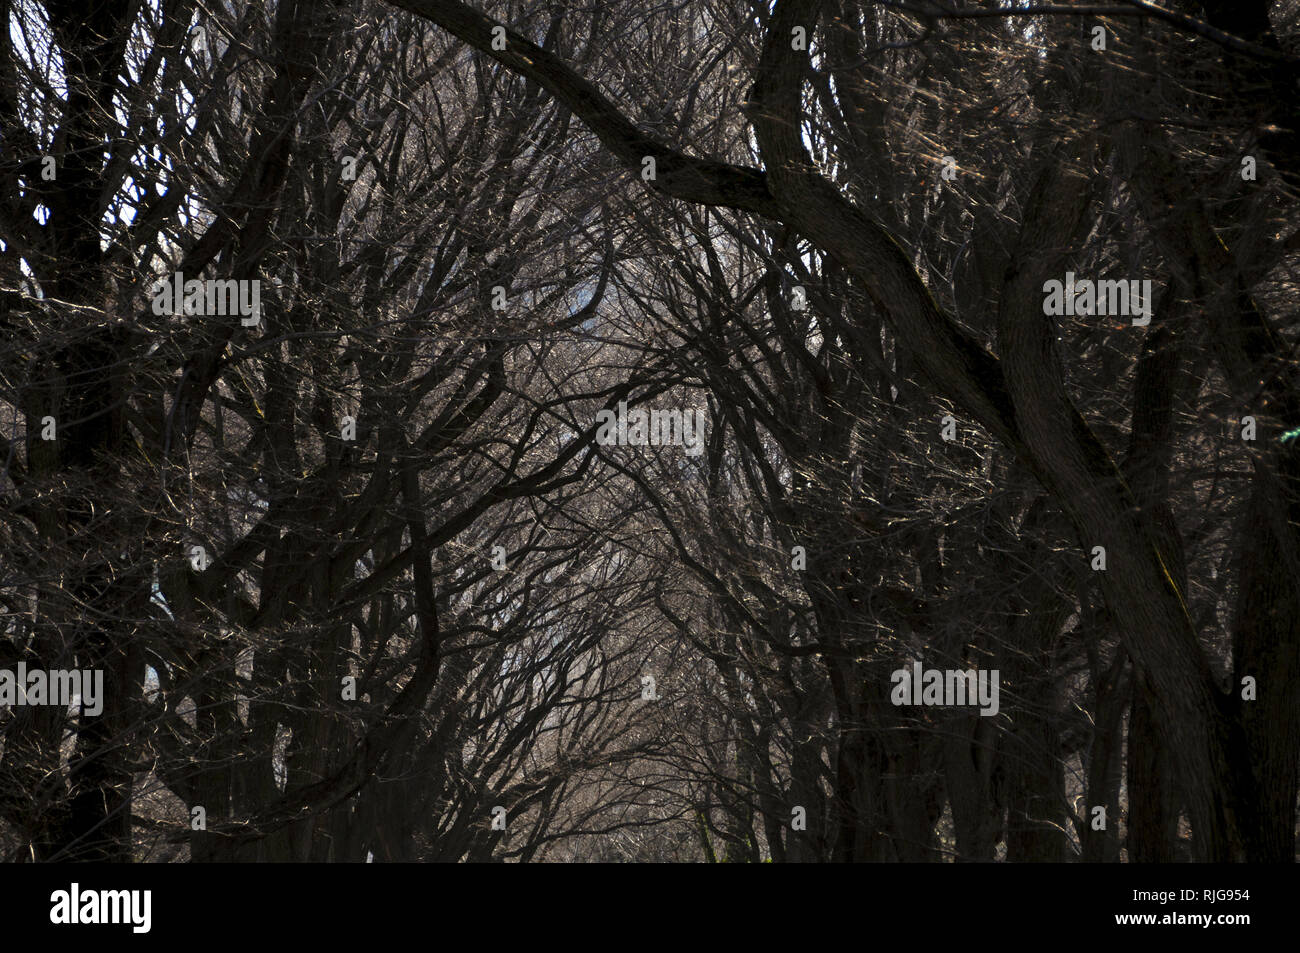 A row of tall hibernating trees in winter forming a canopy with its leafless branches. - Stock Image